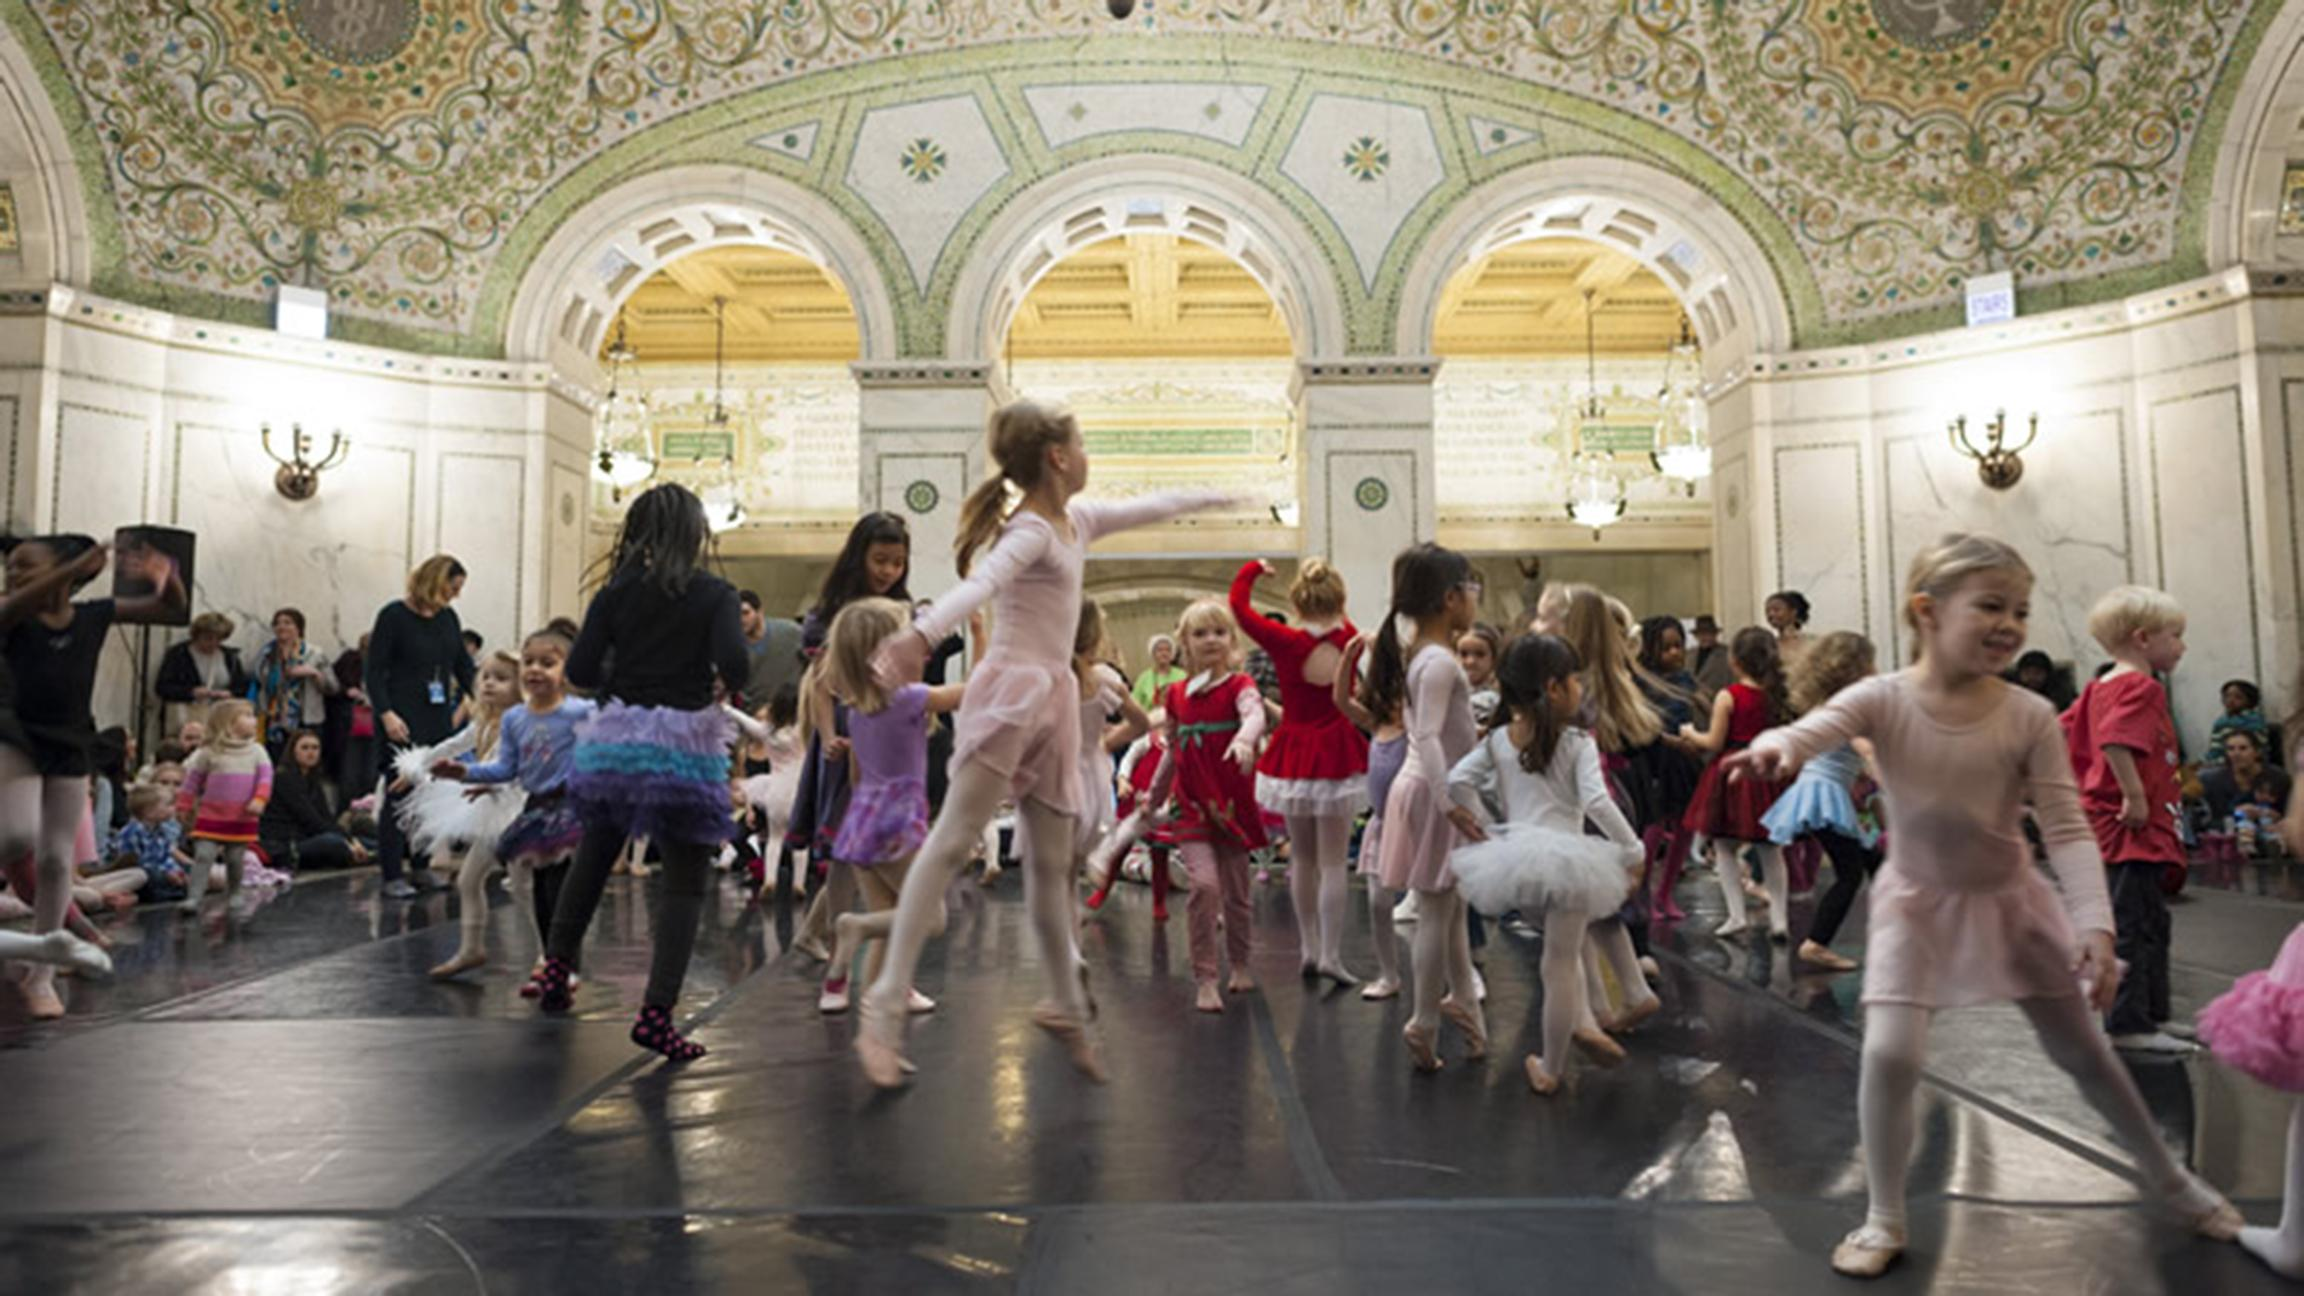 Sugar plum fairies of all ages can dress up and boogie down this weekend. (Courtesy of City of Chicago)